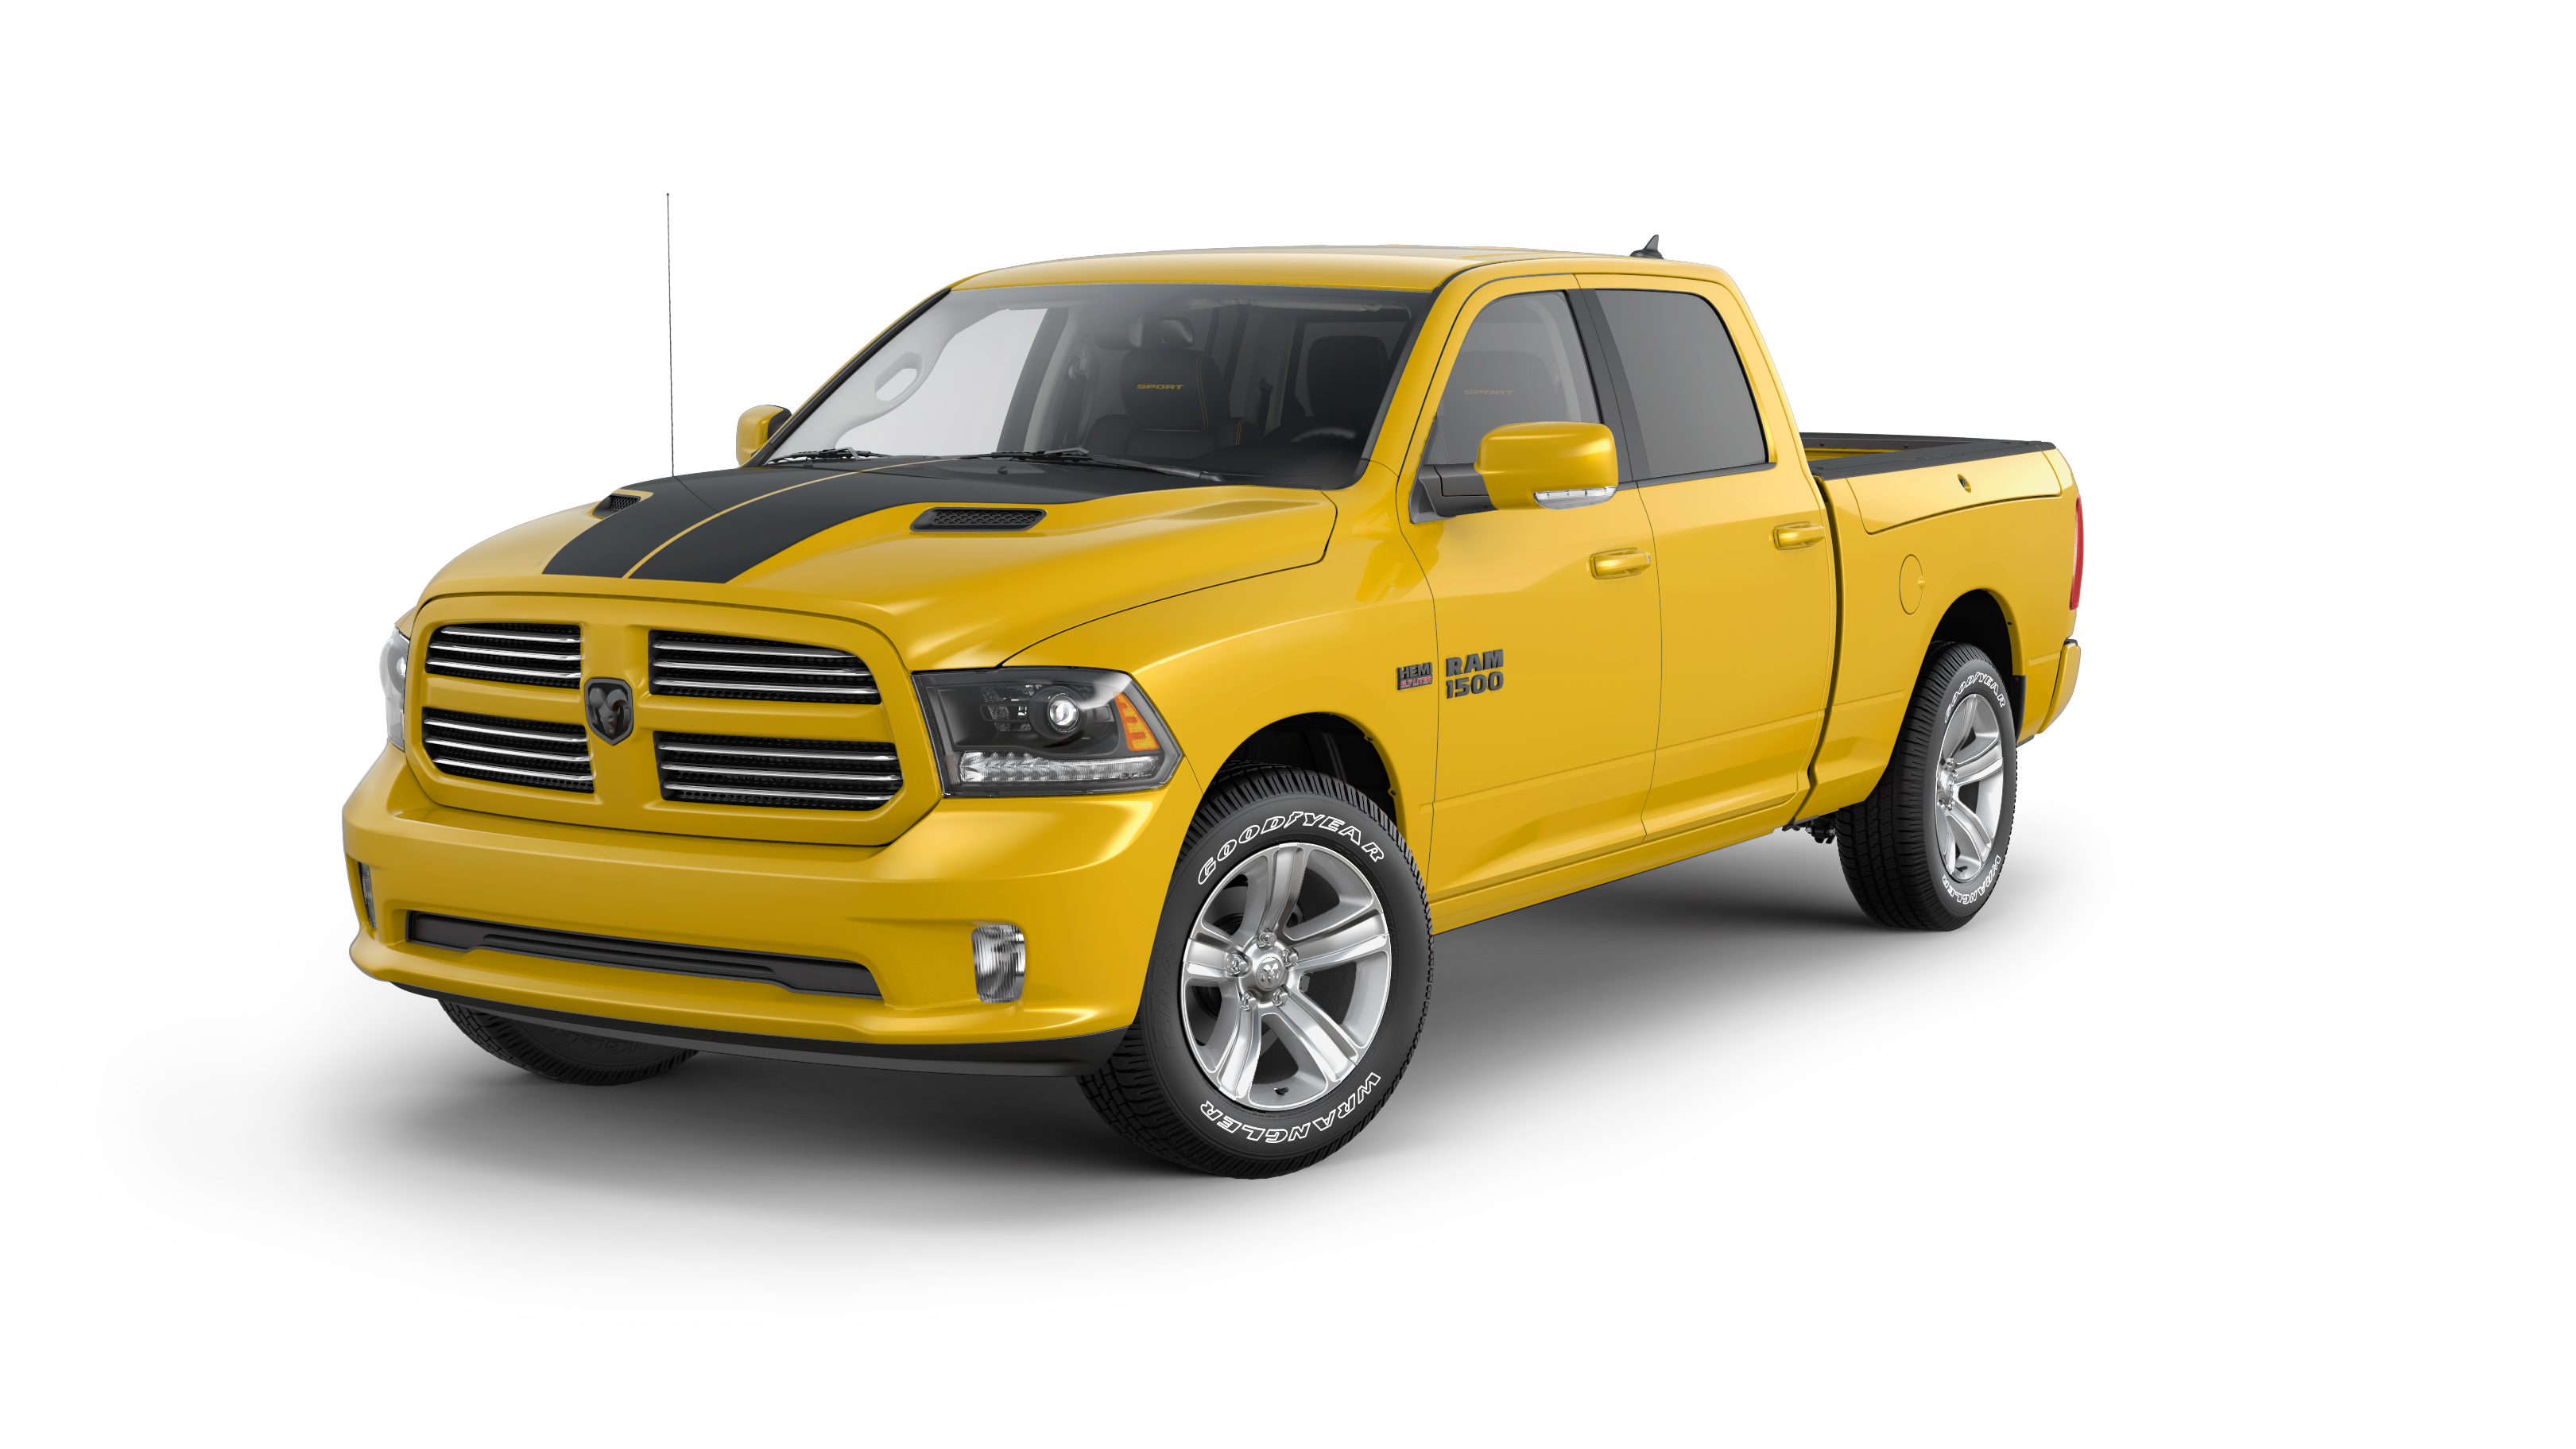 2016 Ram 1500 Stinger Yellow Sport Is the Pickup Truck Version of Bumblebee